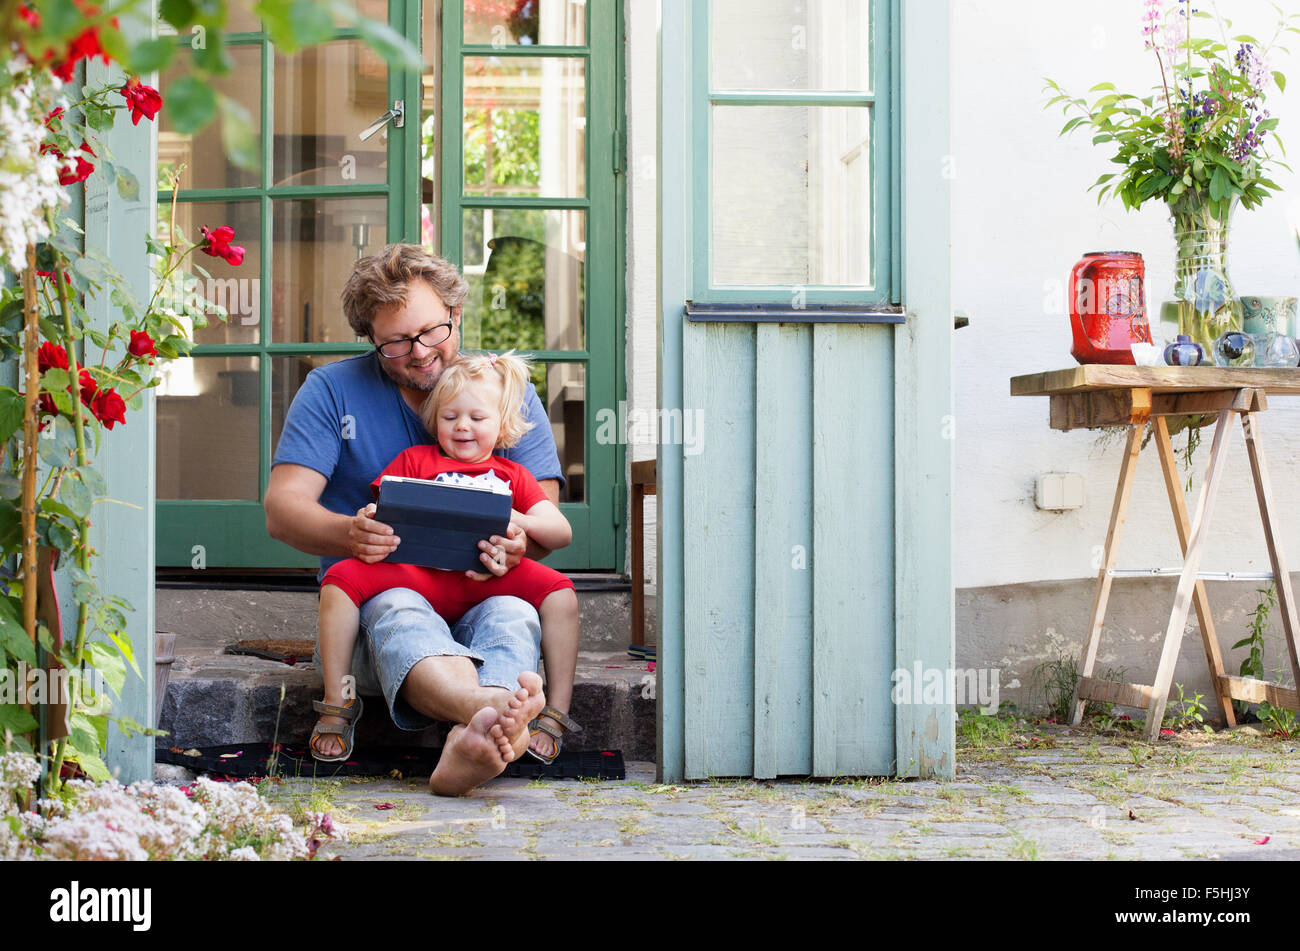 Sweden, Skane, Mossby, Daughter with father sitting on stone step and holding tablet pc - Stock Image